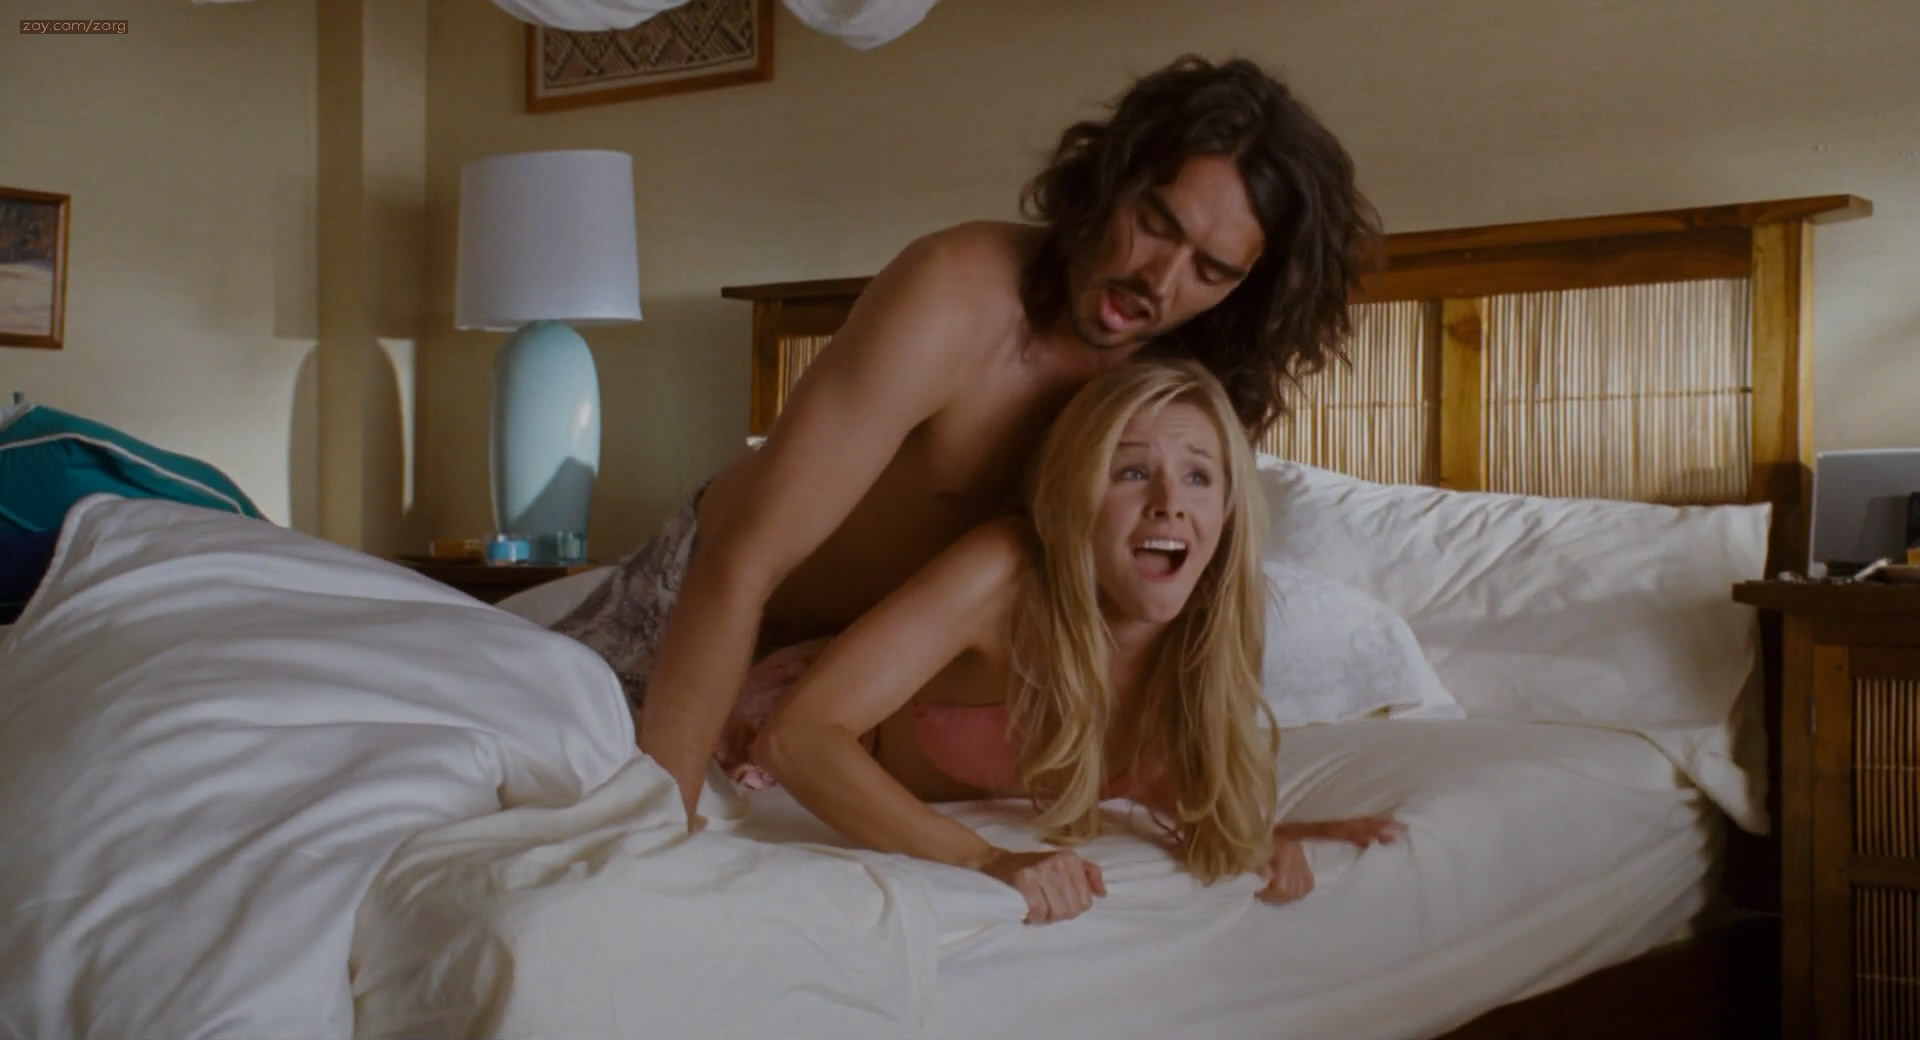 Hanna Verboom Nude Pics Good kristen bell nude but covered bikini and sex and carla alapont